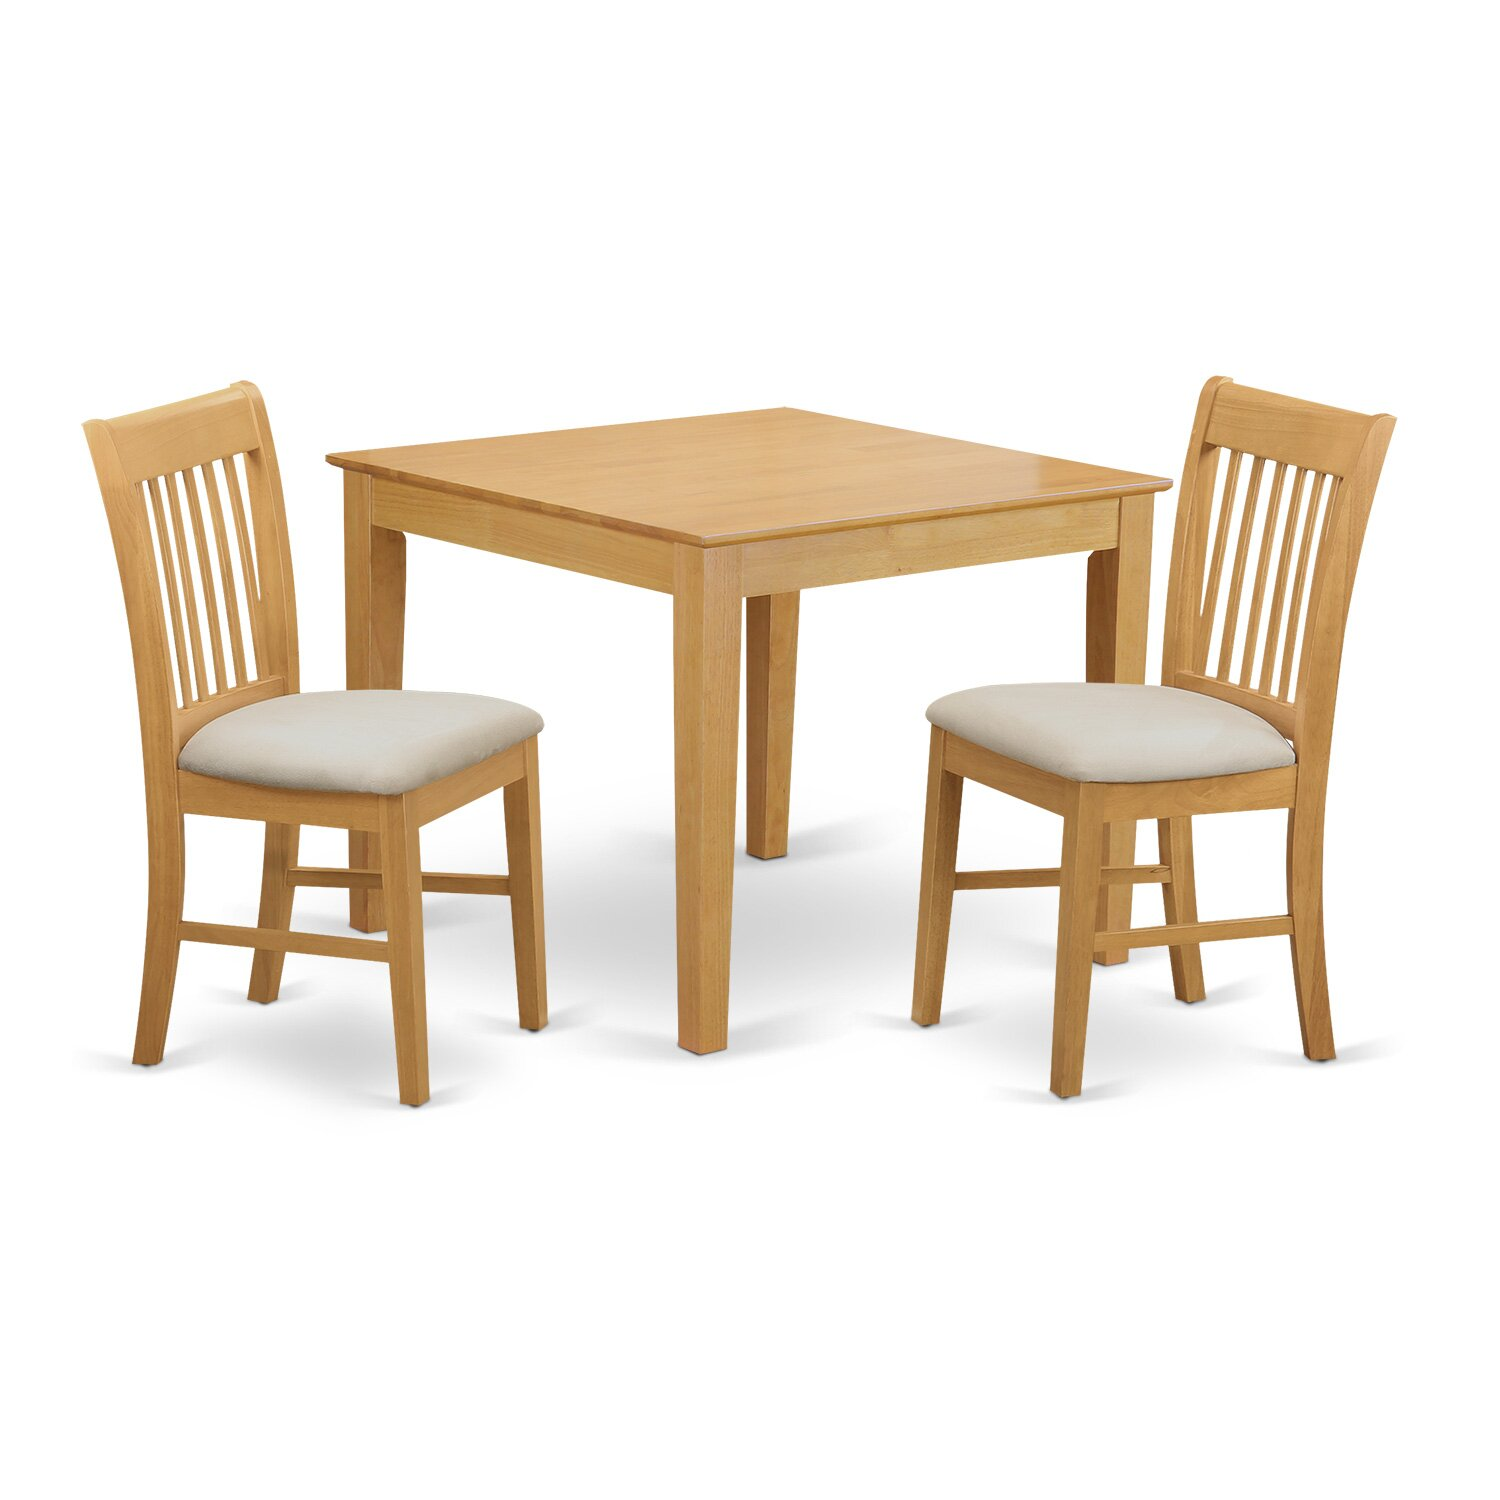 Wayfair Dining Room Tables And Chairs Dining table